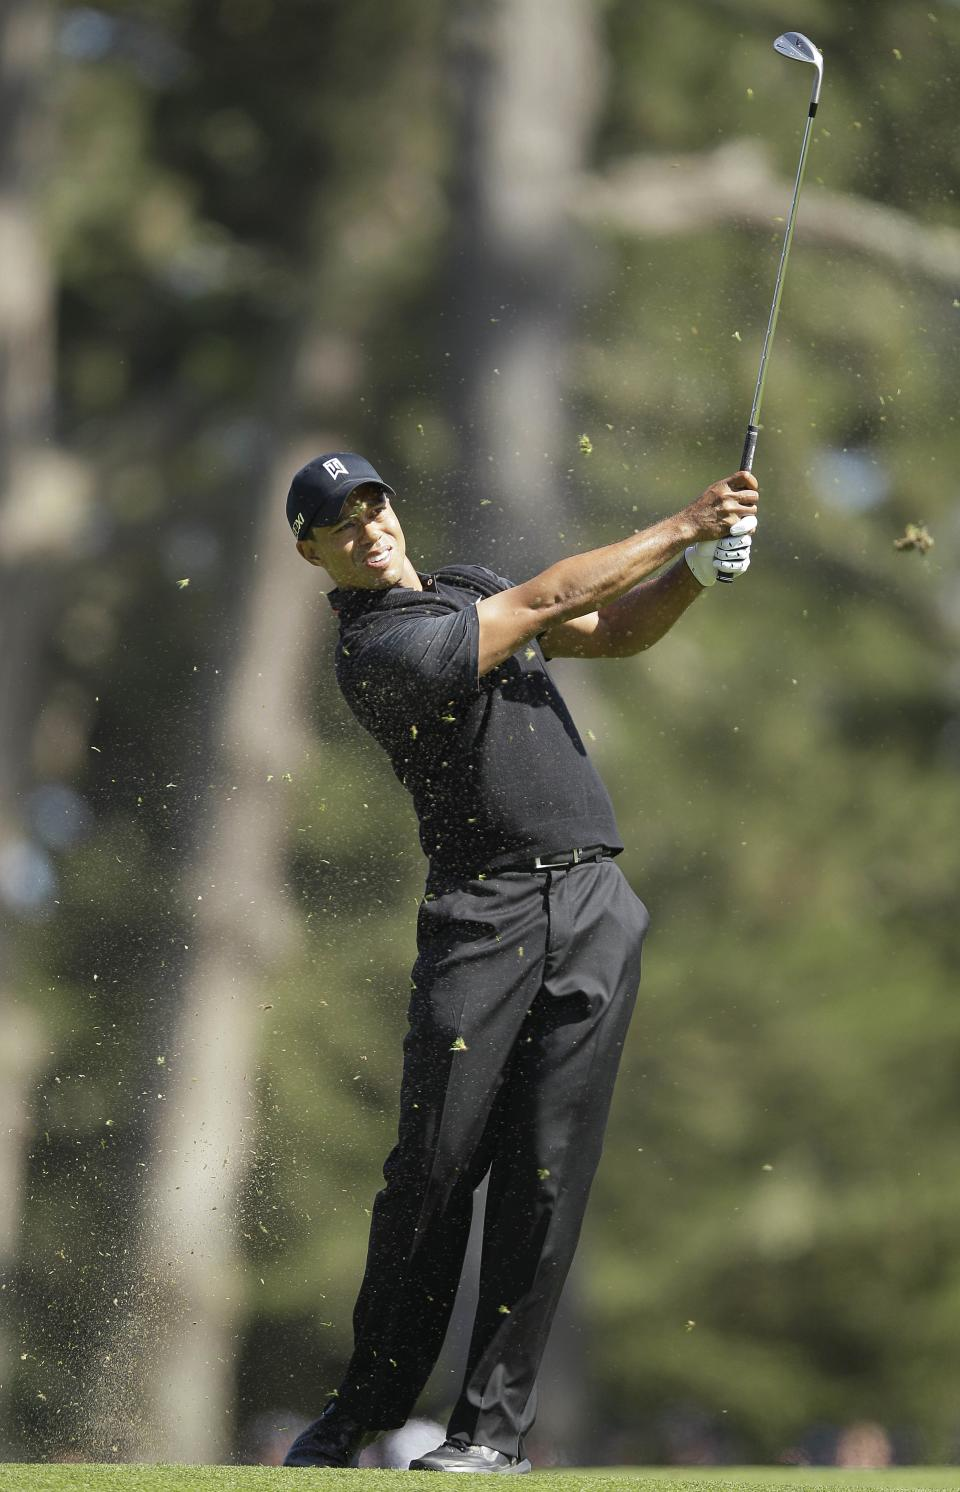 Tiger Woods hits a shot on the 11th hole during the second round of the U.S. Open Championship golf tournament Friday, June 15, 2012, at The Olympic Club in San Francisco. (AP Photo/Eric Risberg)